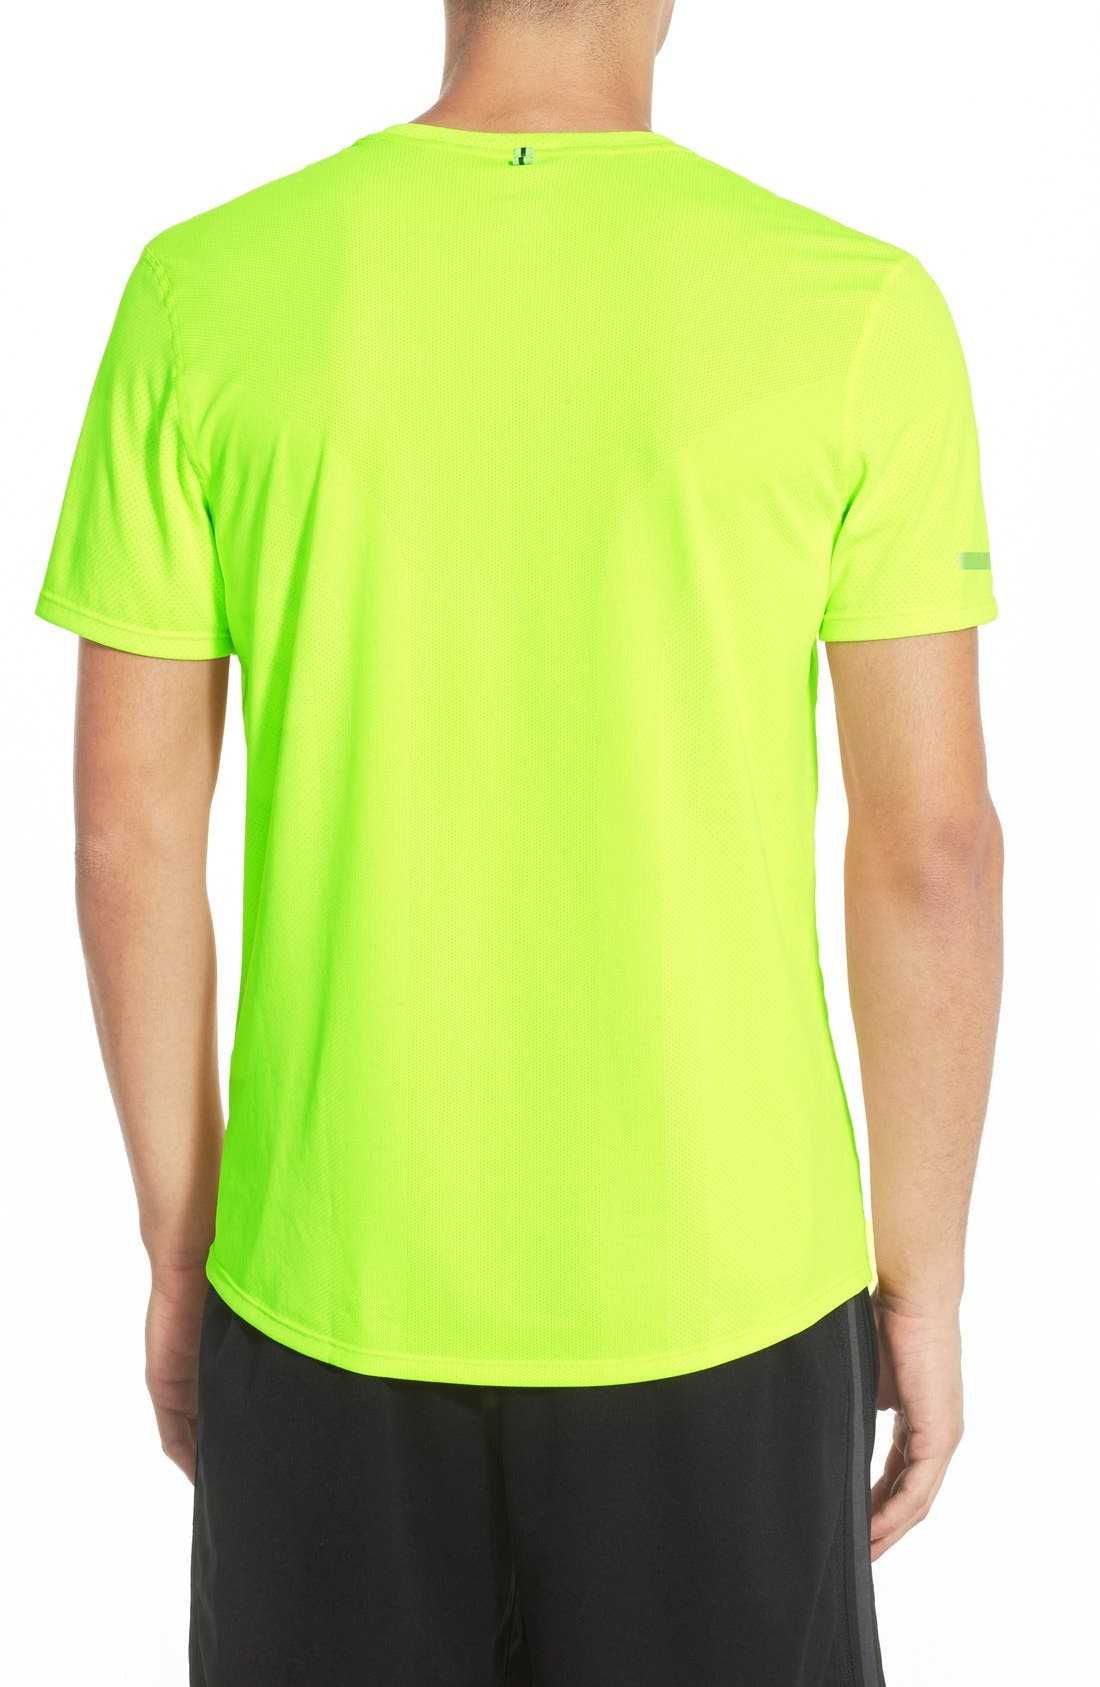 'Contour' Mesh Dri-FIT Running T-Shirt,                             Alternate thumbnail 13, color,